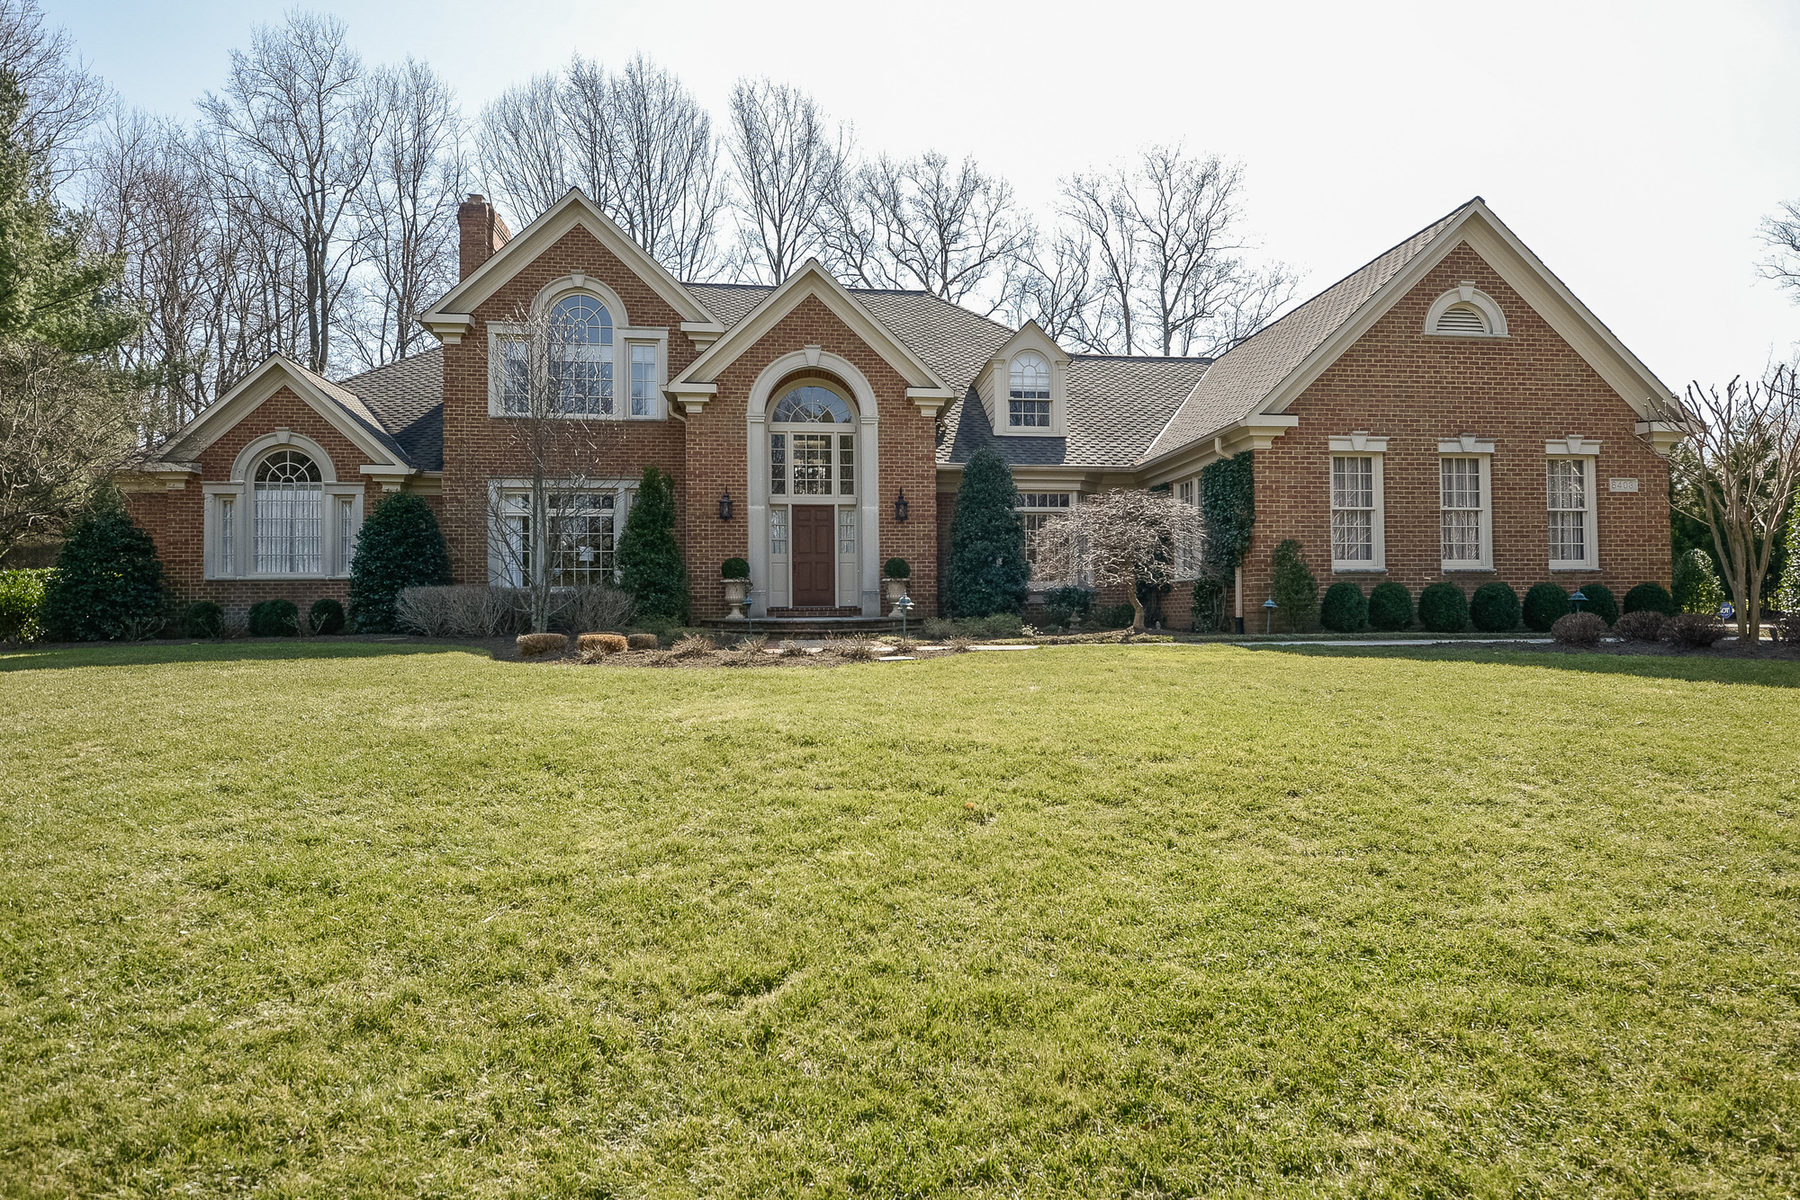 Casa Unifamiliar por un Venta en 8403 Brookewood Court, Mclean 8403 Brookewood Ct McLean, Virginia 22102 Estados Unidos